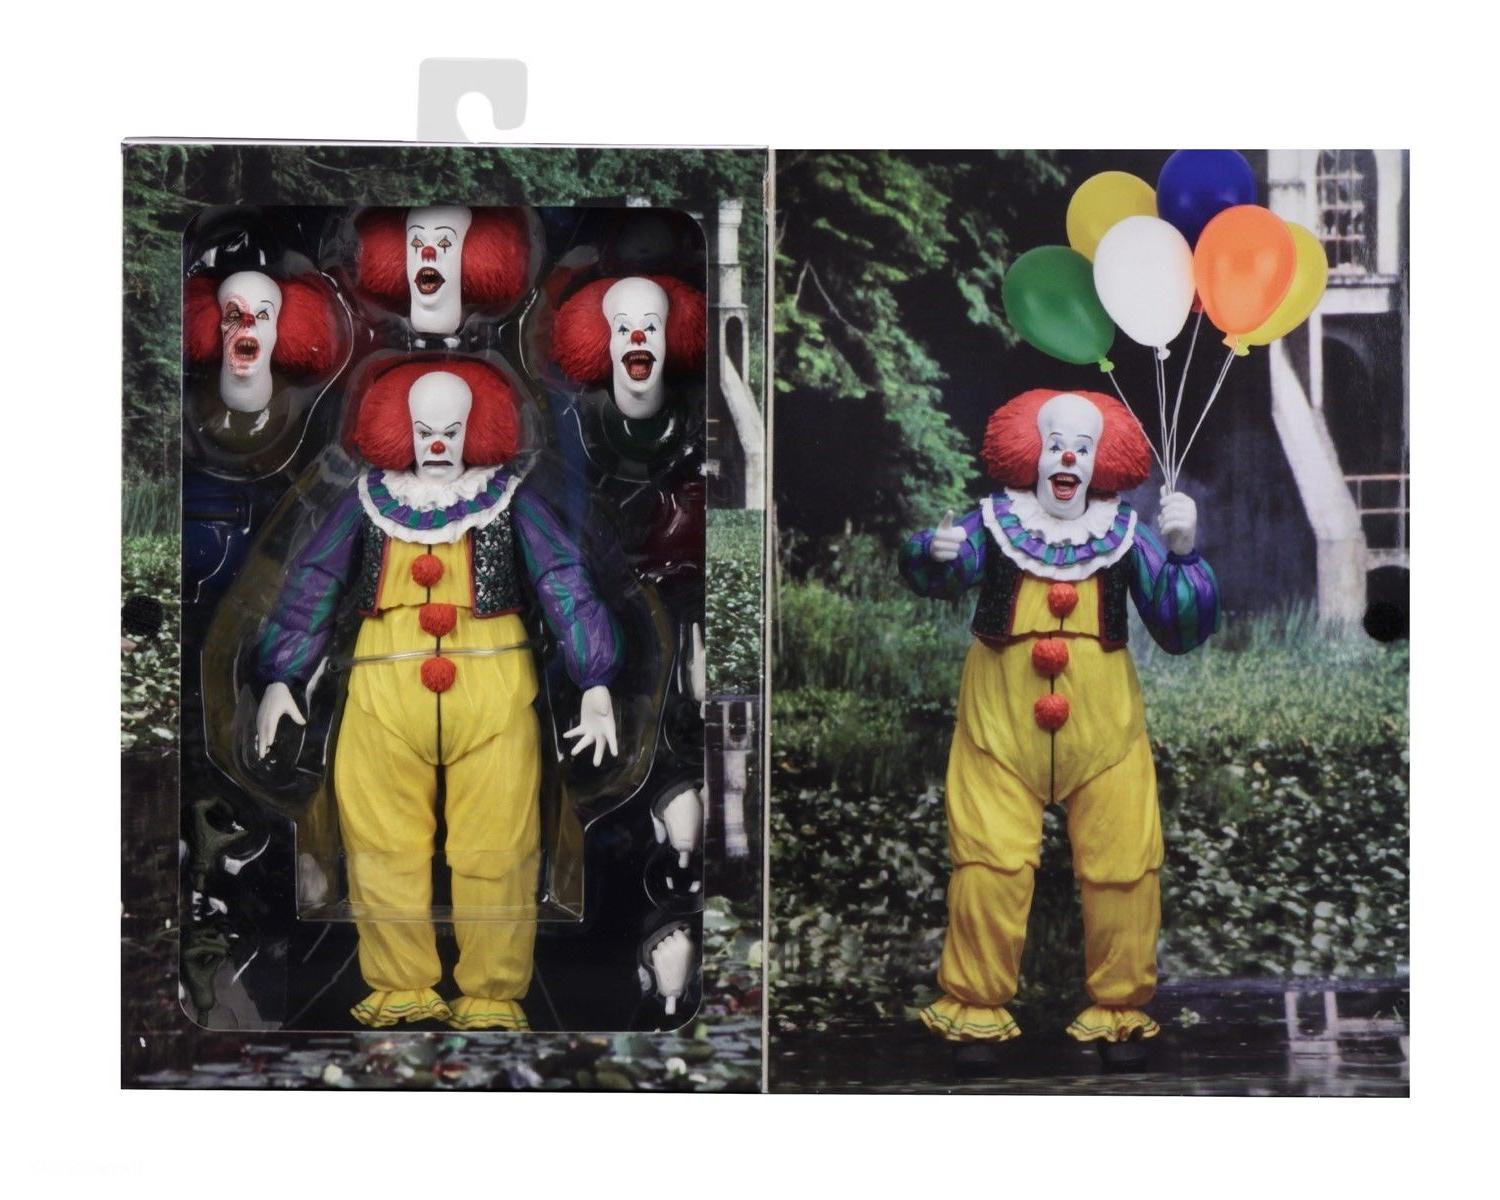 IT Action - Pennywise